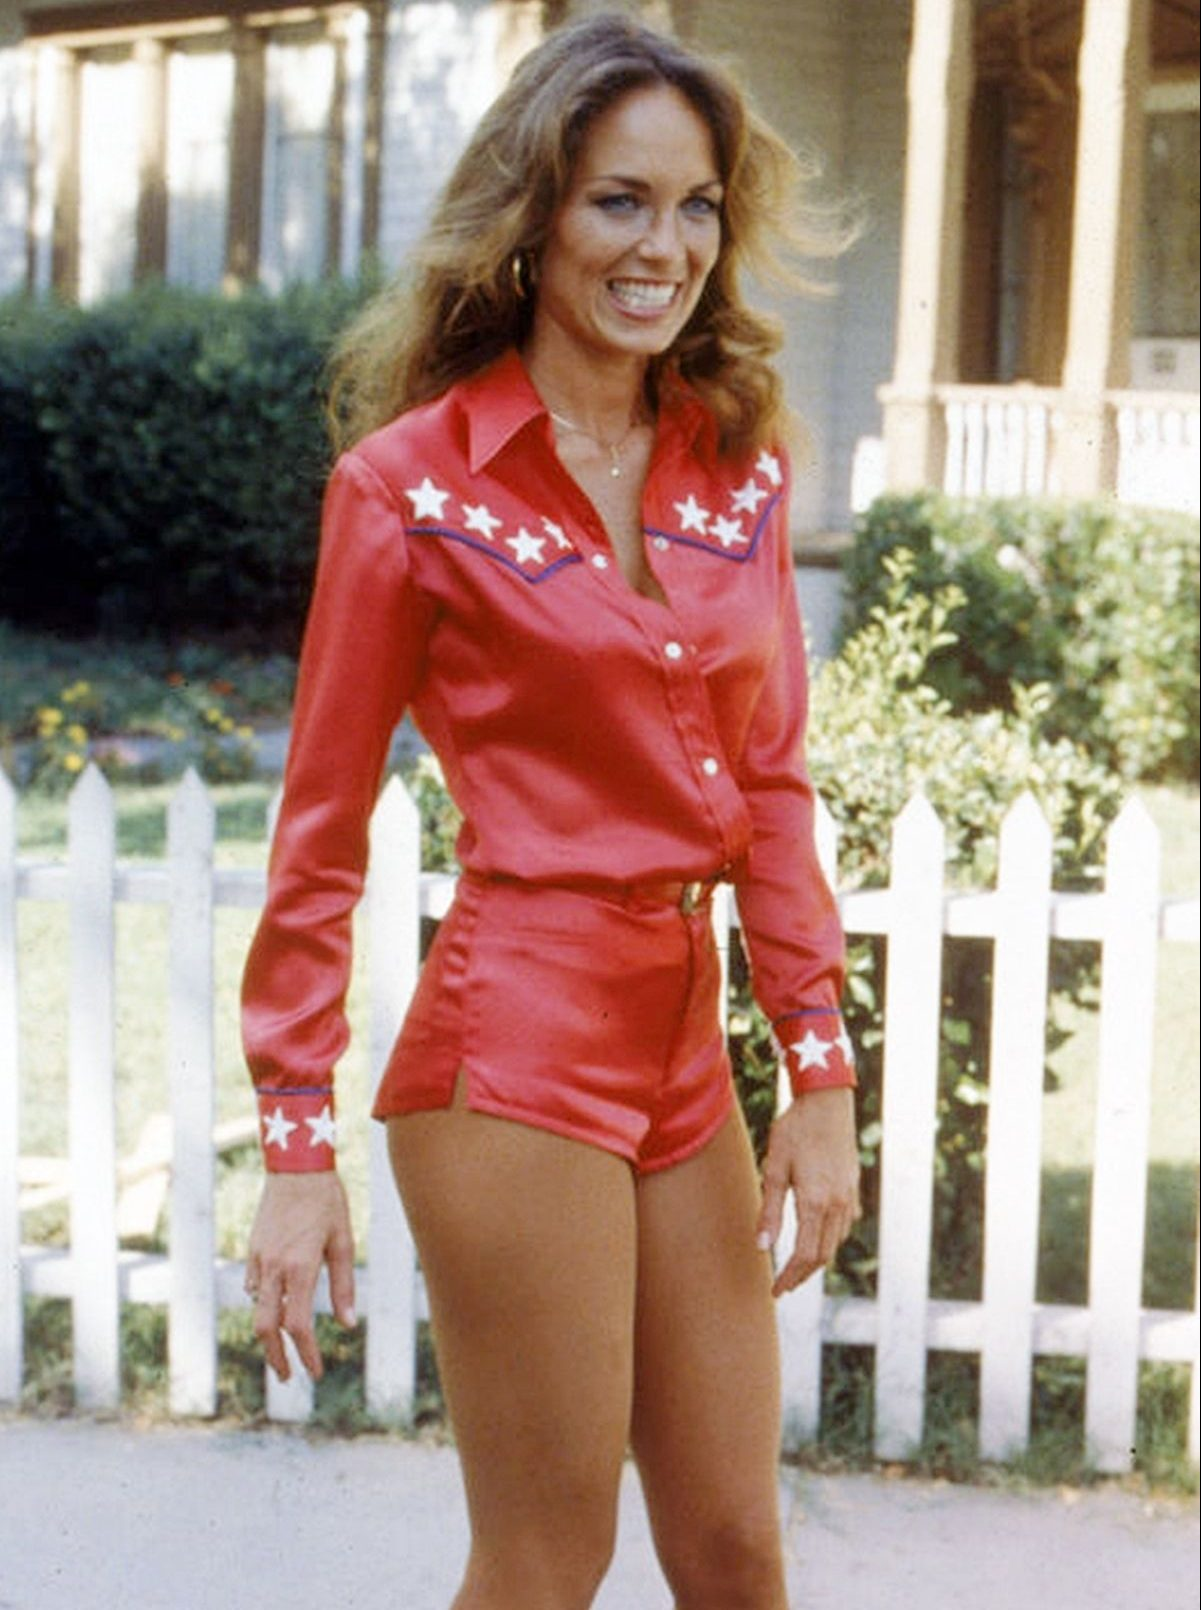 Catherine Bach as Daisy Duke in The Dukes of Hazard in her iconic red leather outfit